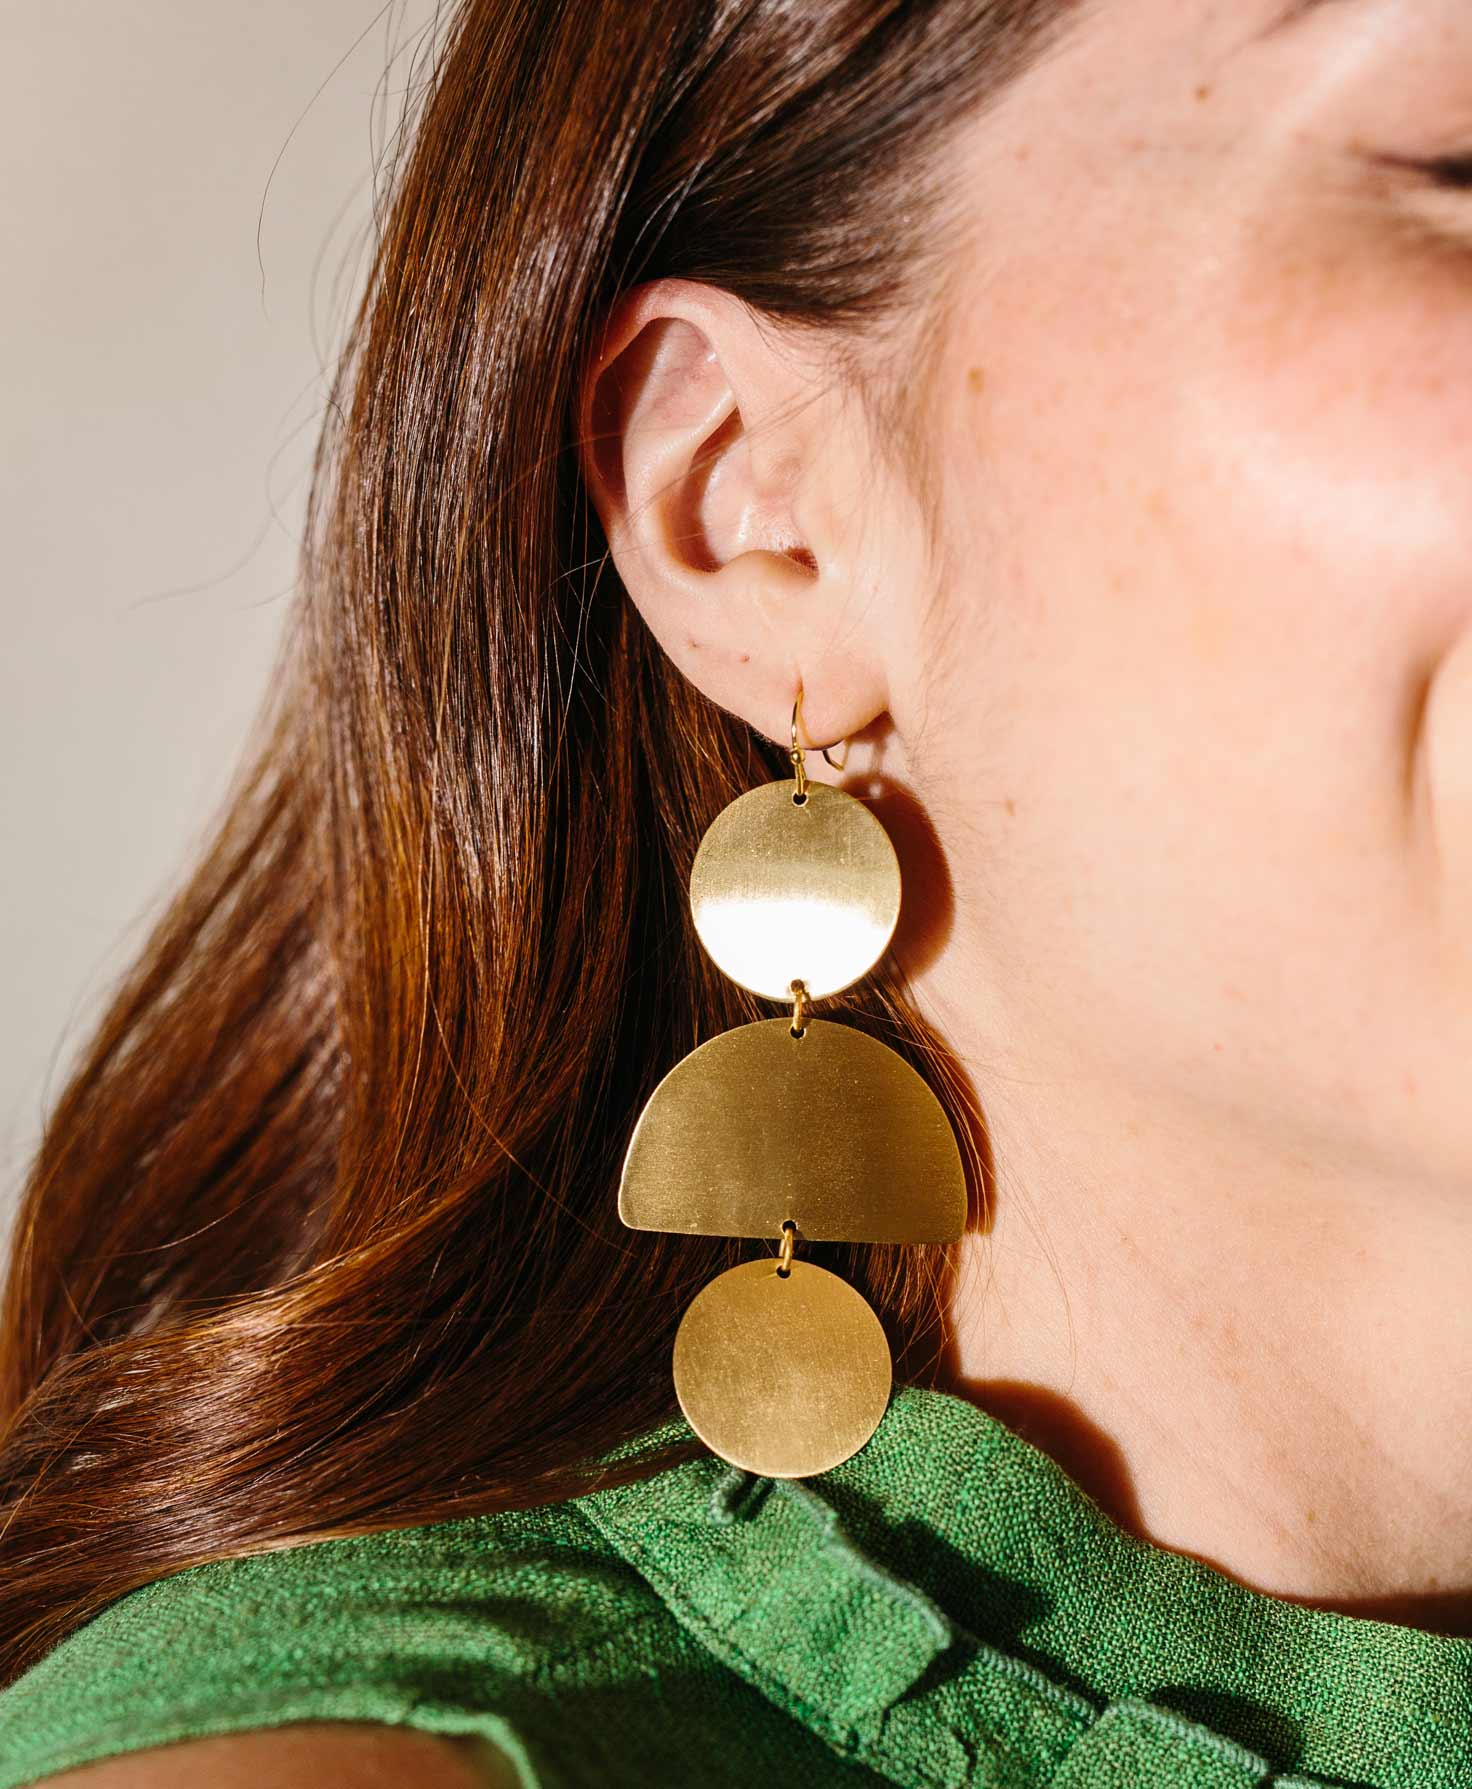 Half of a model's face is shown. She wears a deep green top and the Plaza Earrings. The Earrings make a bold statement as they hang down almost to the model's shoulder. The brass in the earrings shines in the light.